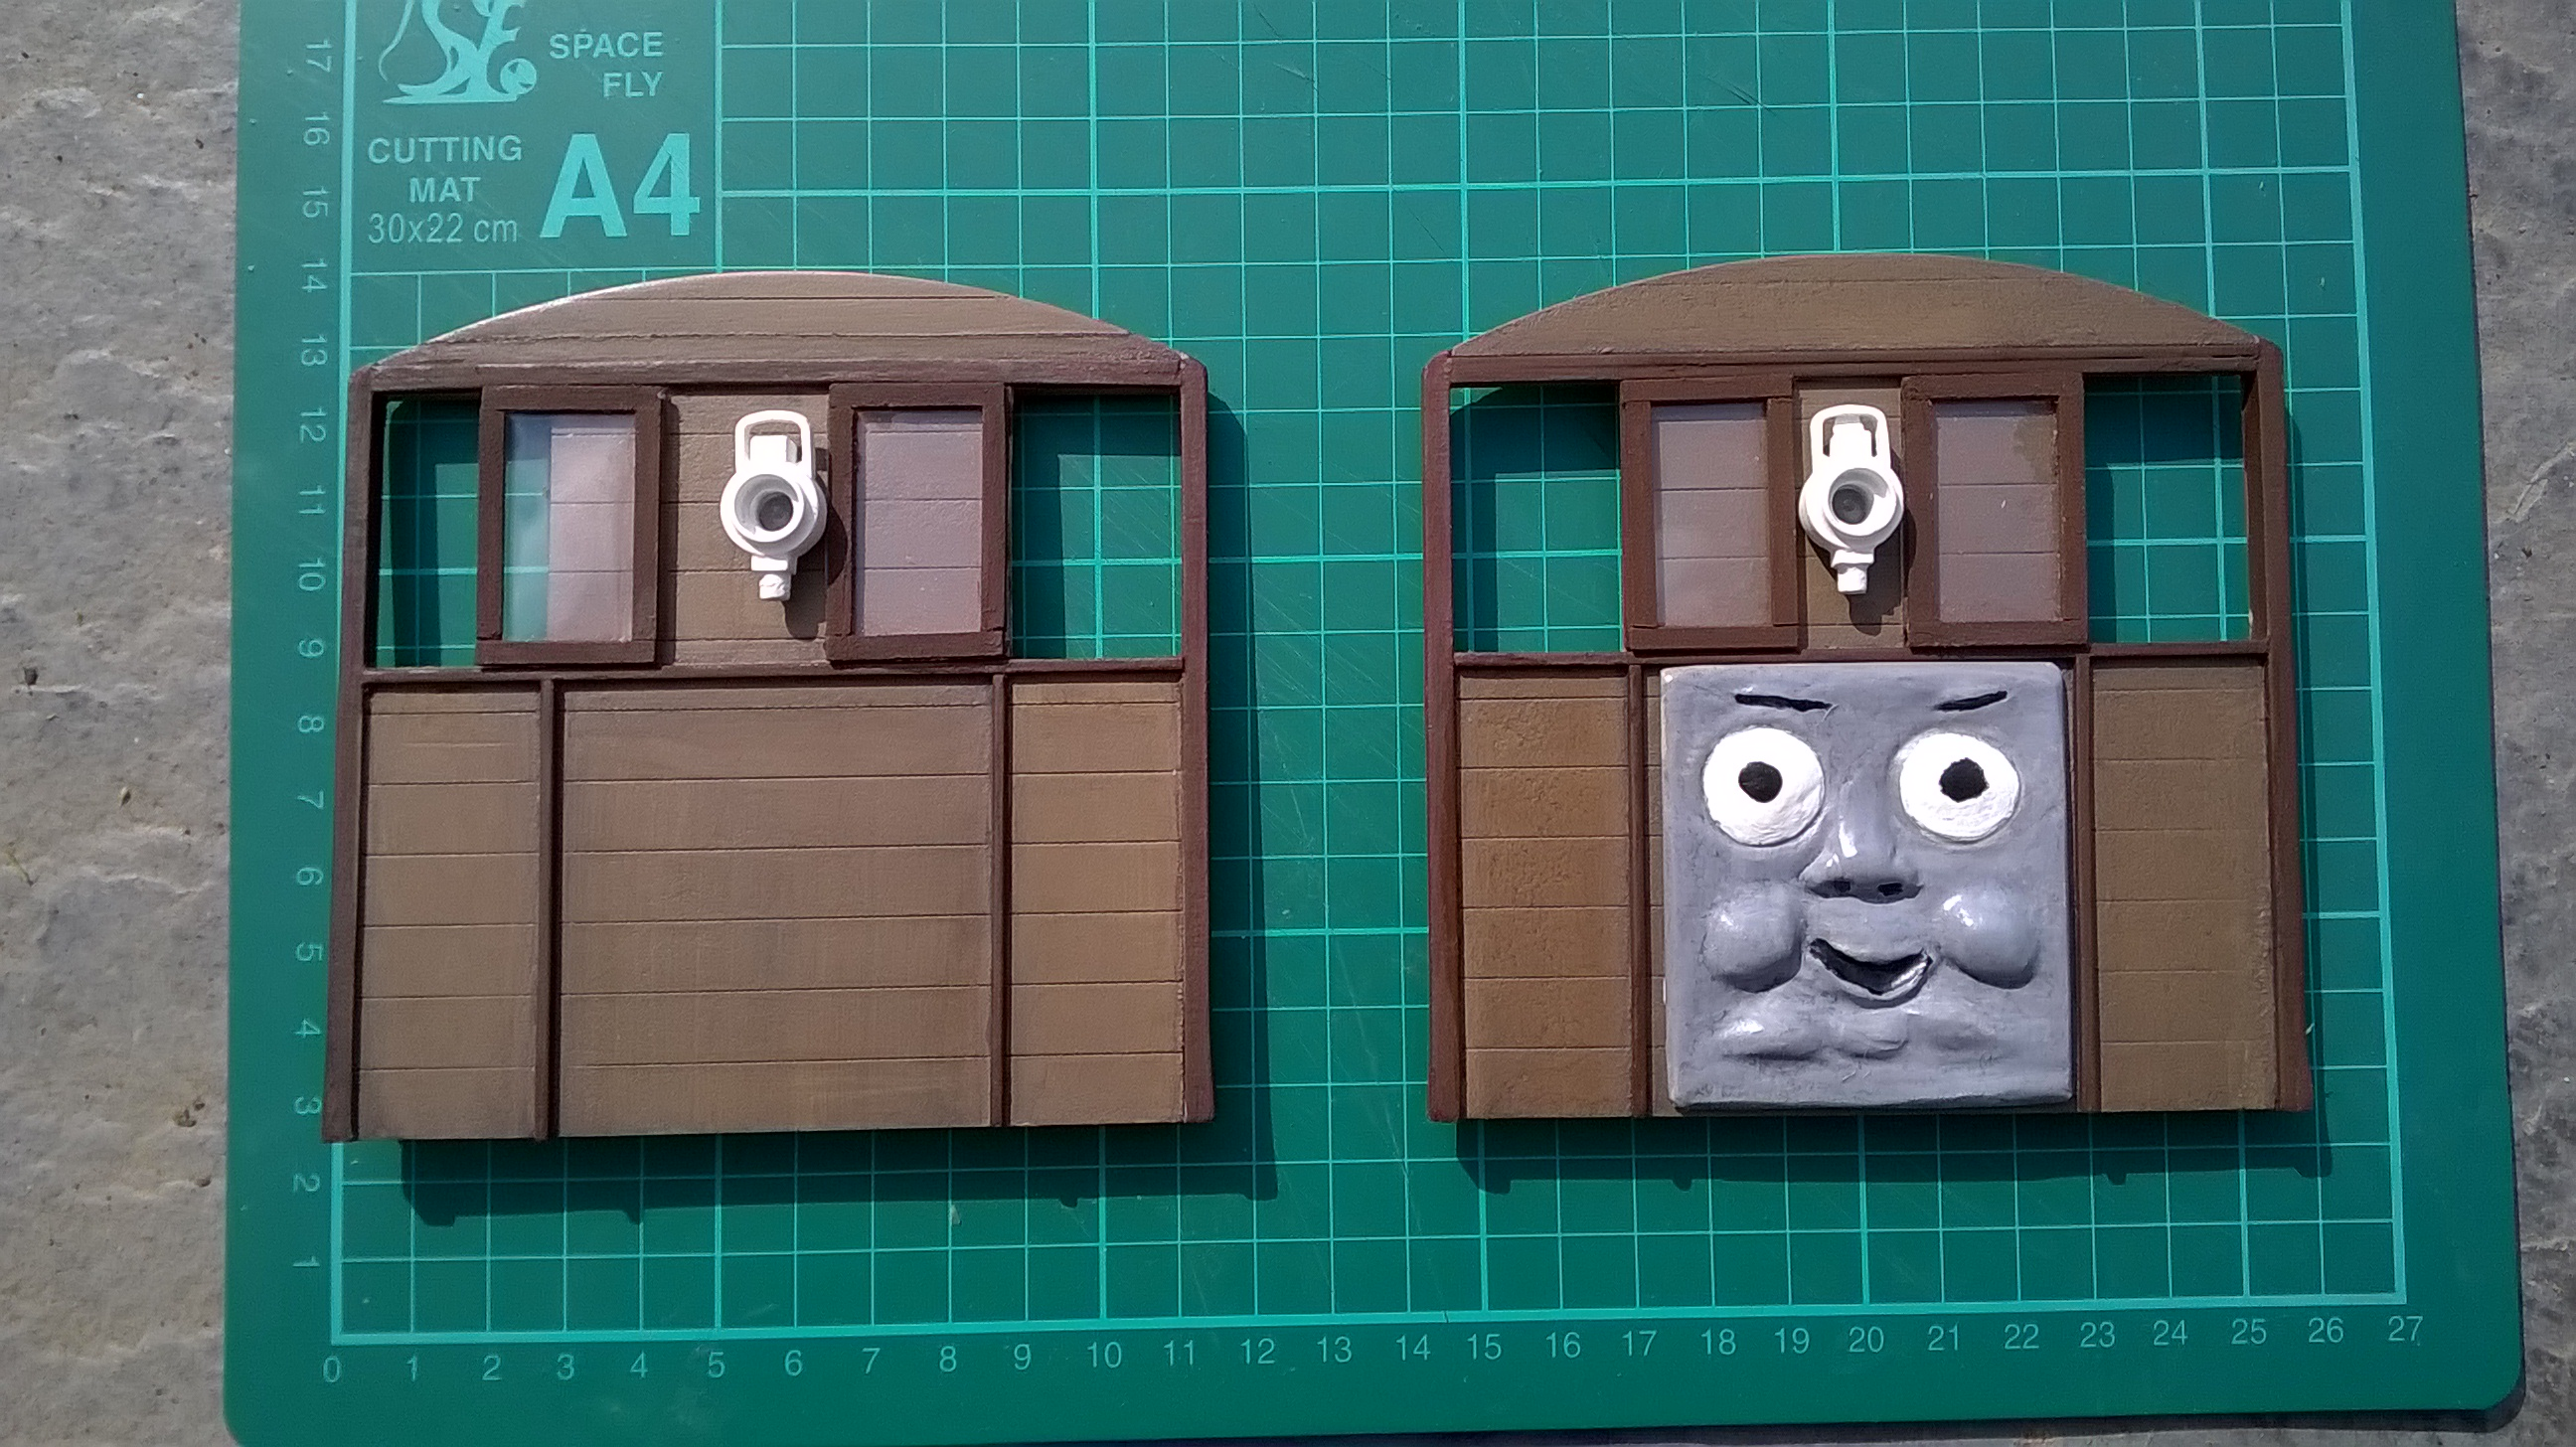 Adding Toby's face to the end panels.